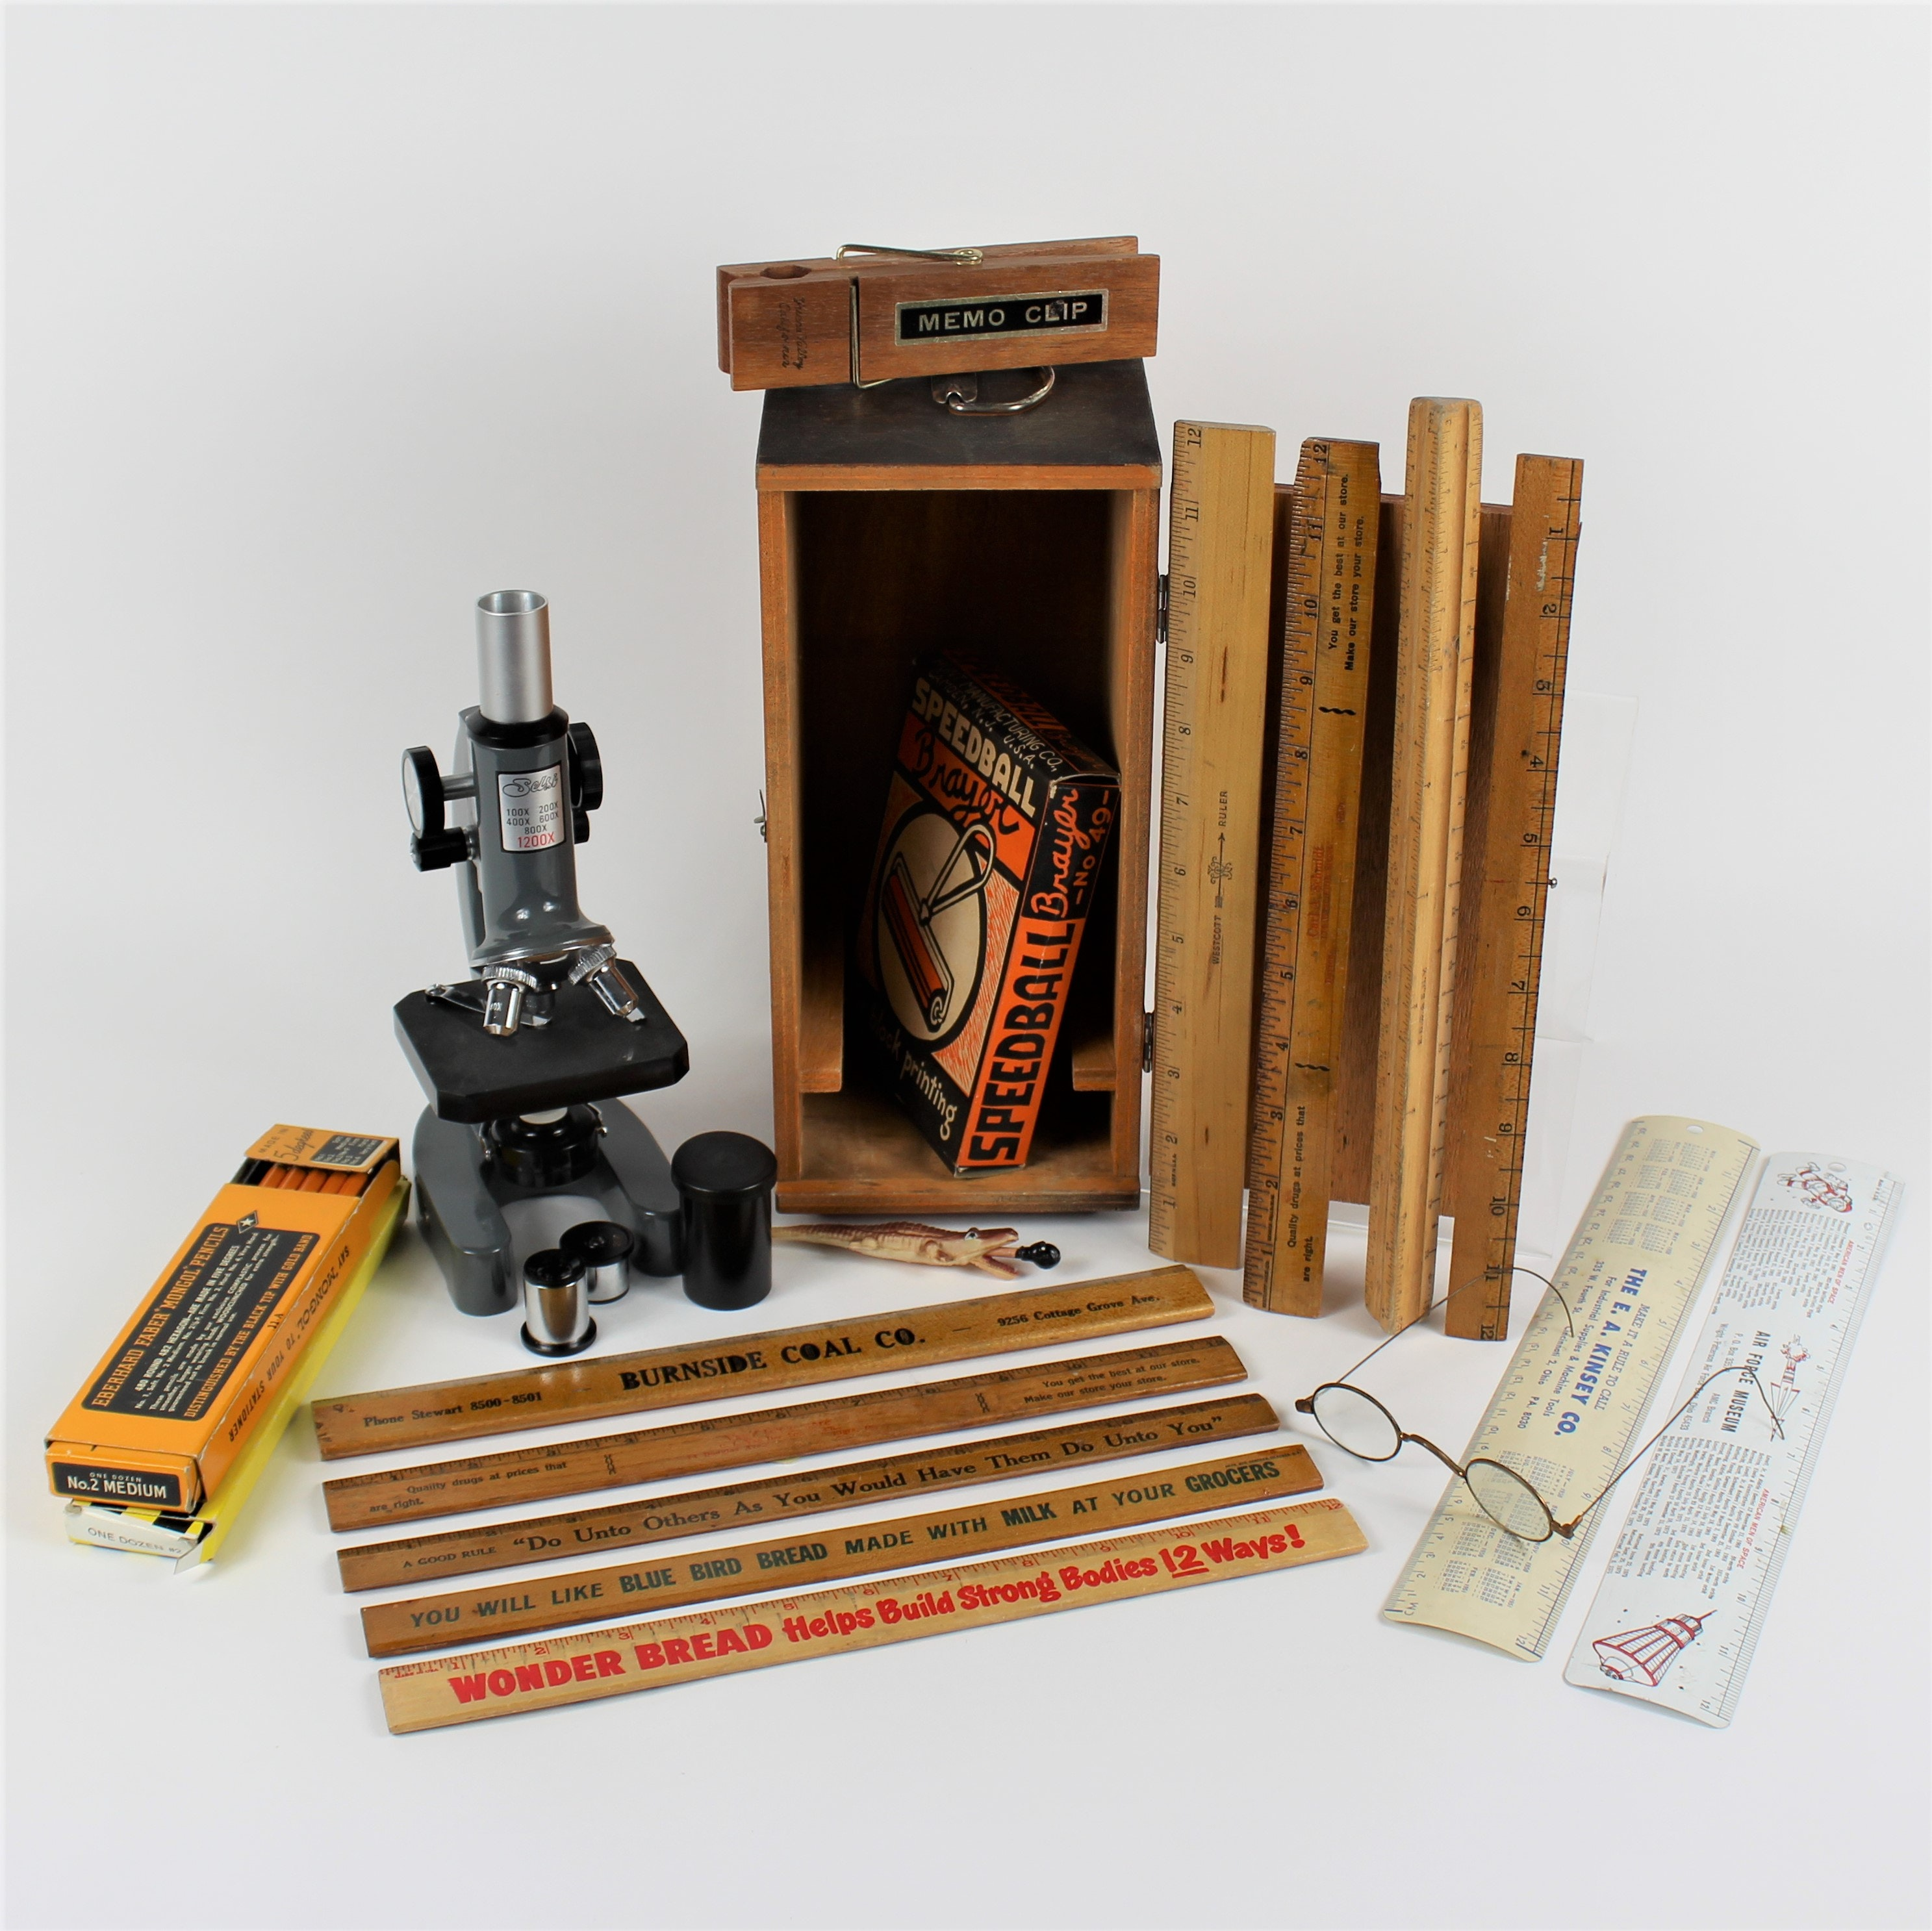 Vintage Selsi Microscope, Vintge Rulers and More